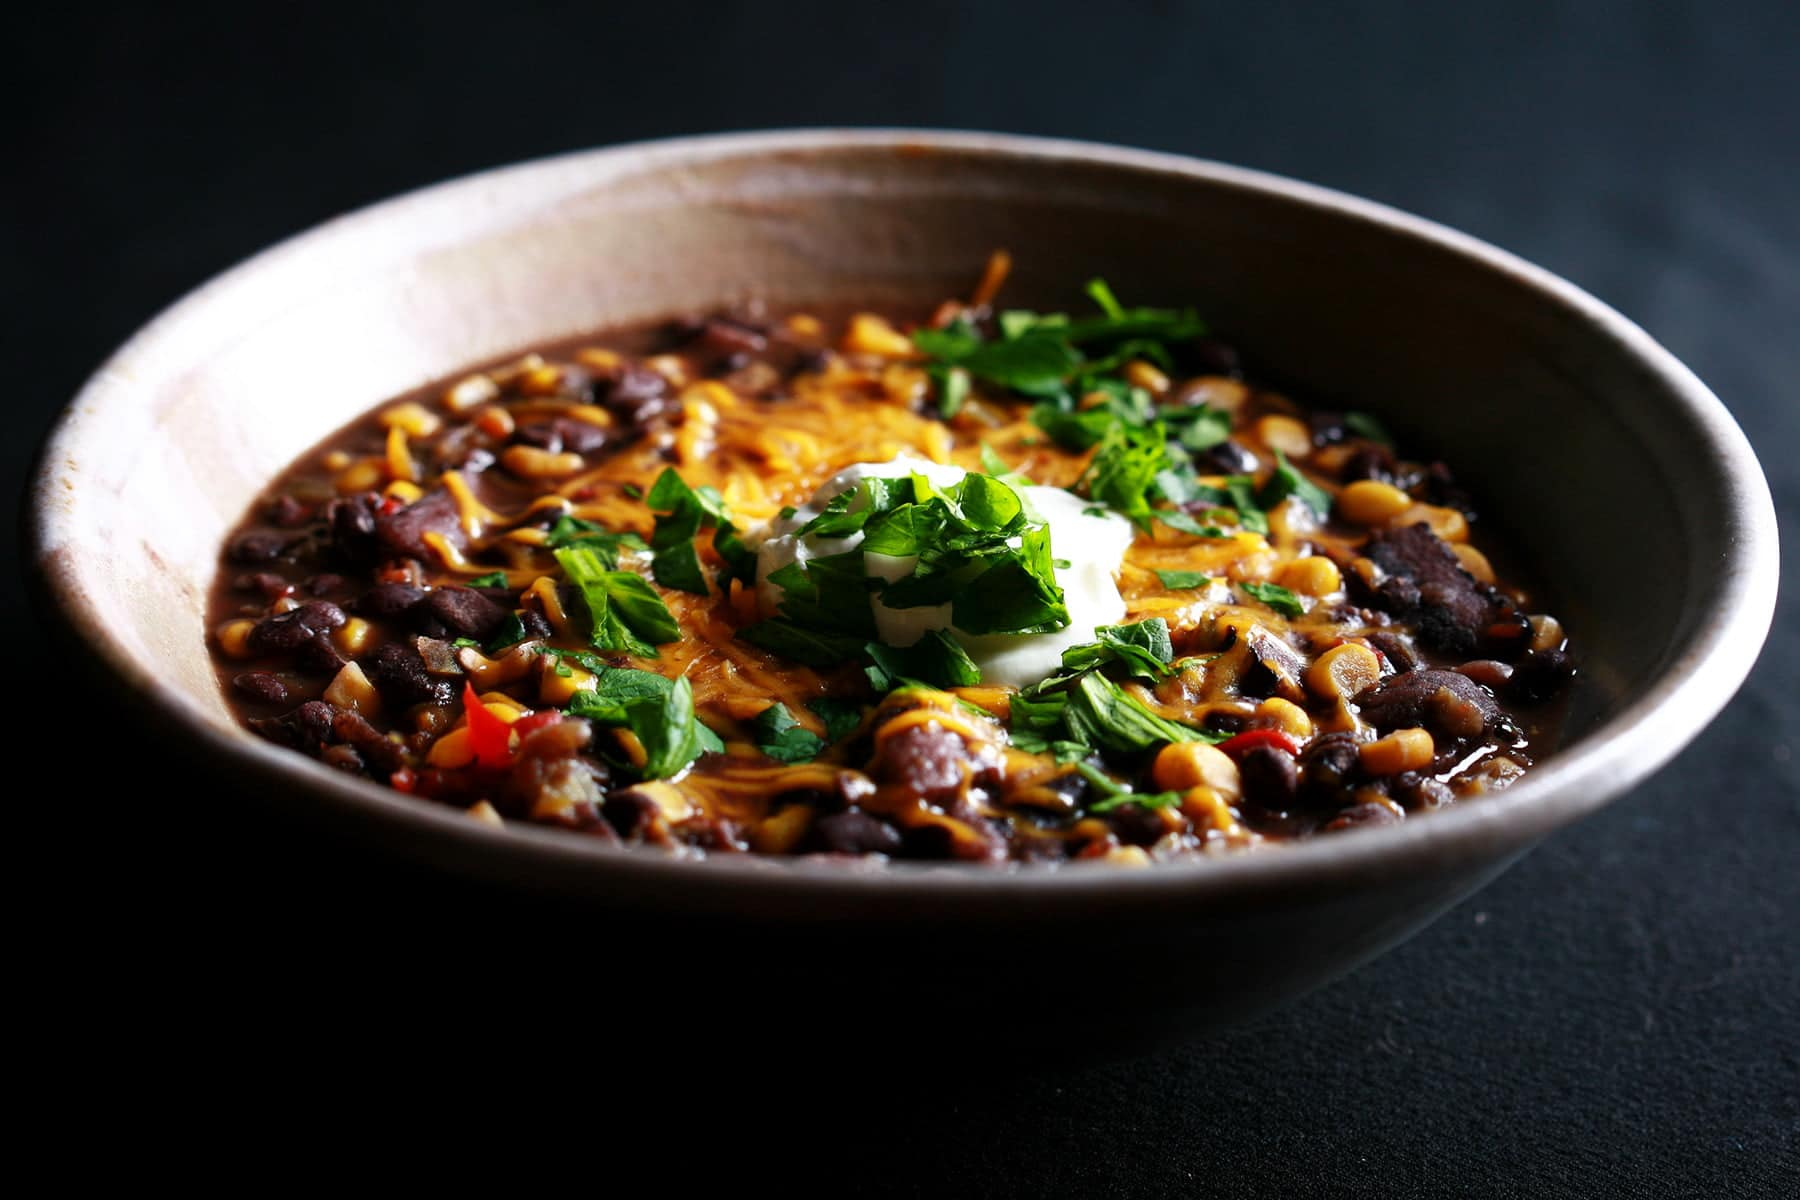 A large bowl of a colourful corn and black bean soup. Corn and red peppers are visible throughout the soup, and there is grated cheddar cheese, soup cream, cilantro, and green onion slices on top.